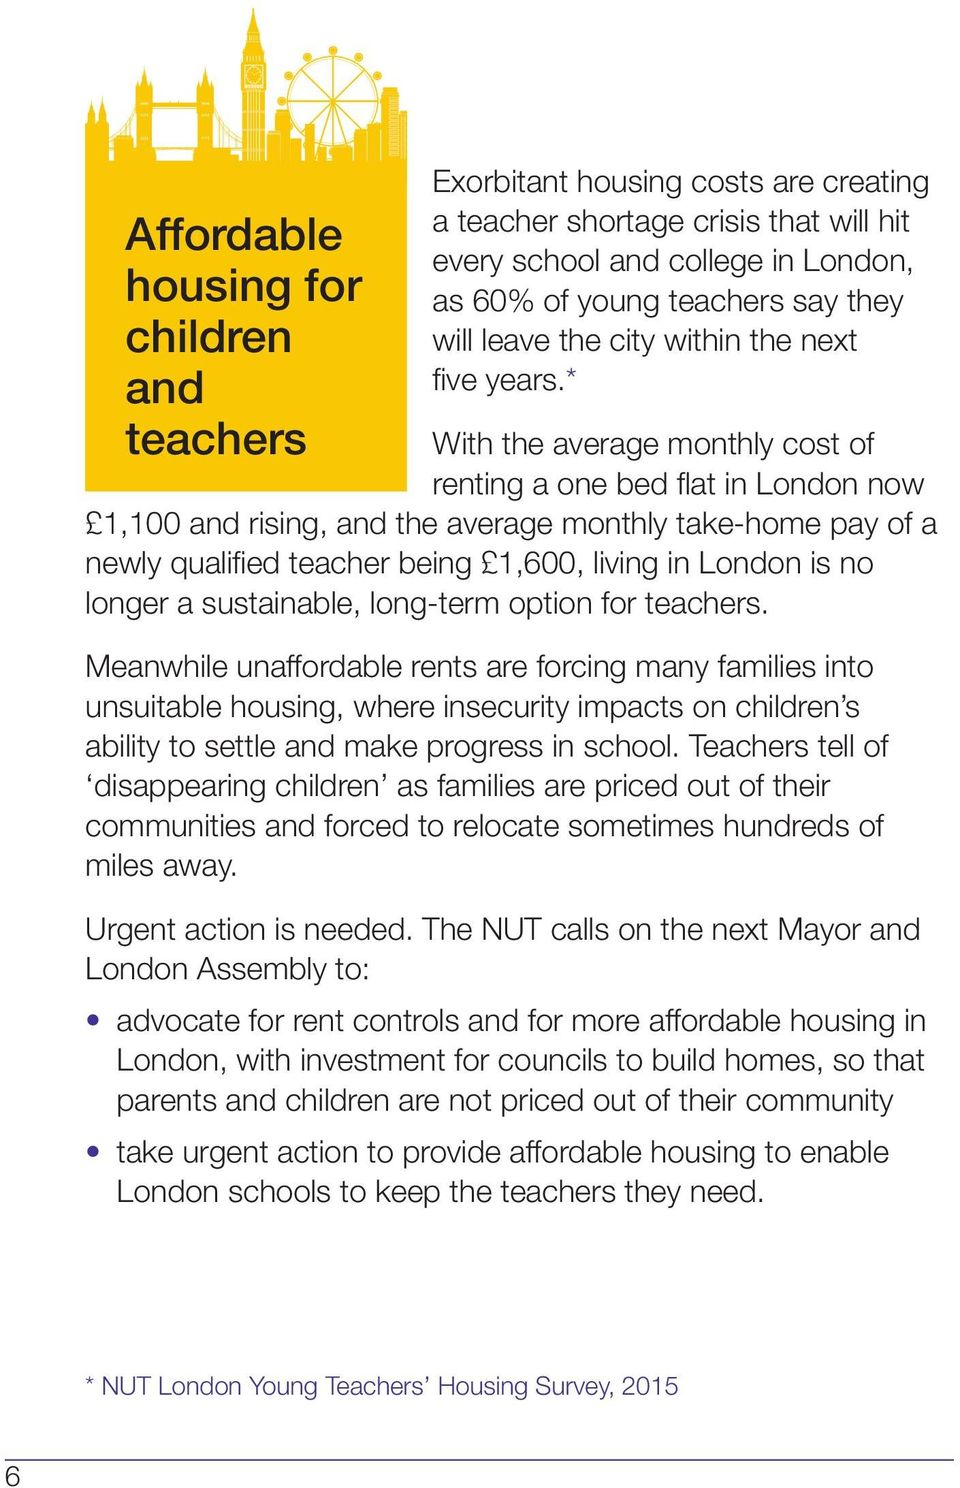 * With the average monthly cost of renting a one bed flat in London now 1,100 and rising, and the average monthly take-home pay of a newly qualified teacher being 1,600, living in London is no longer